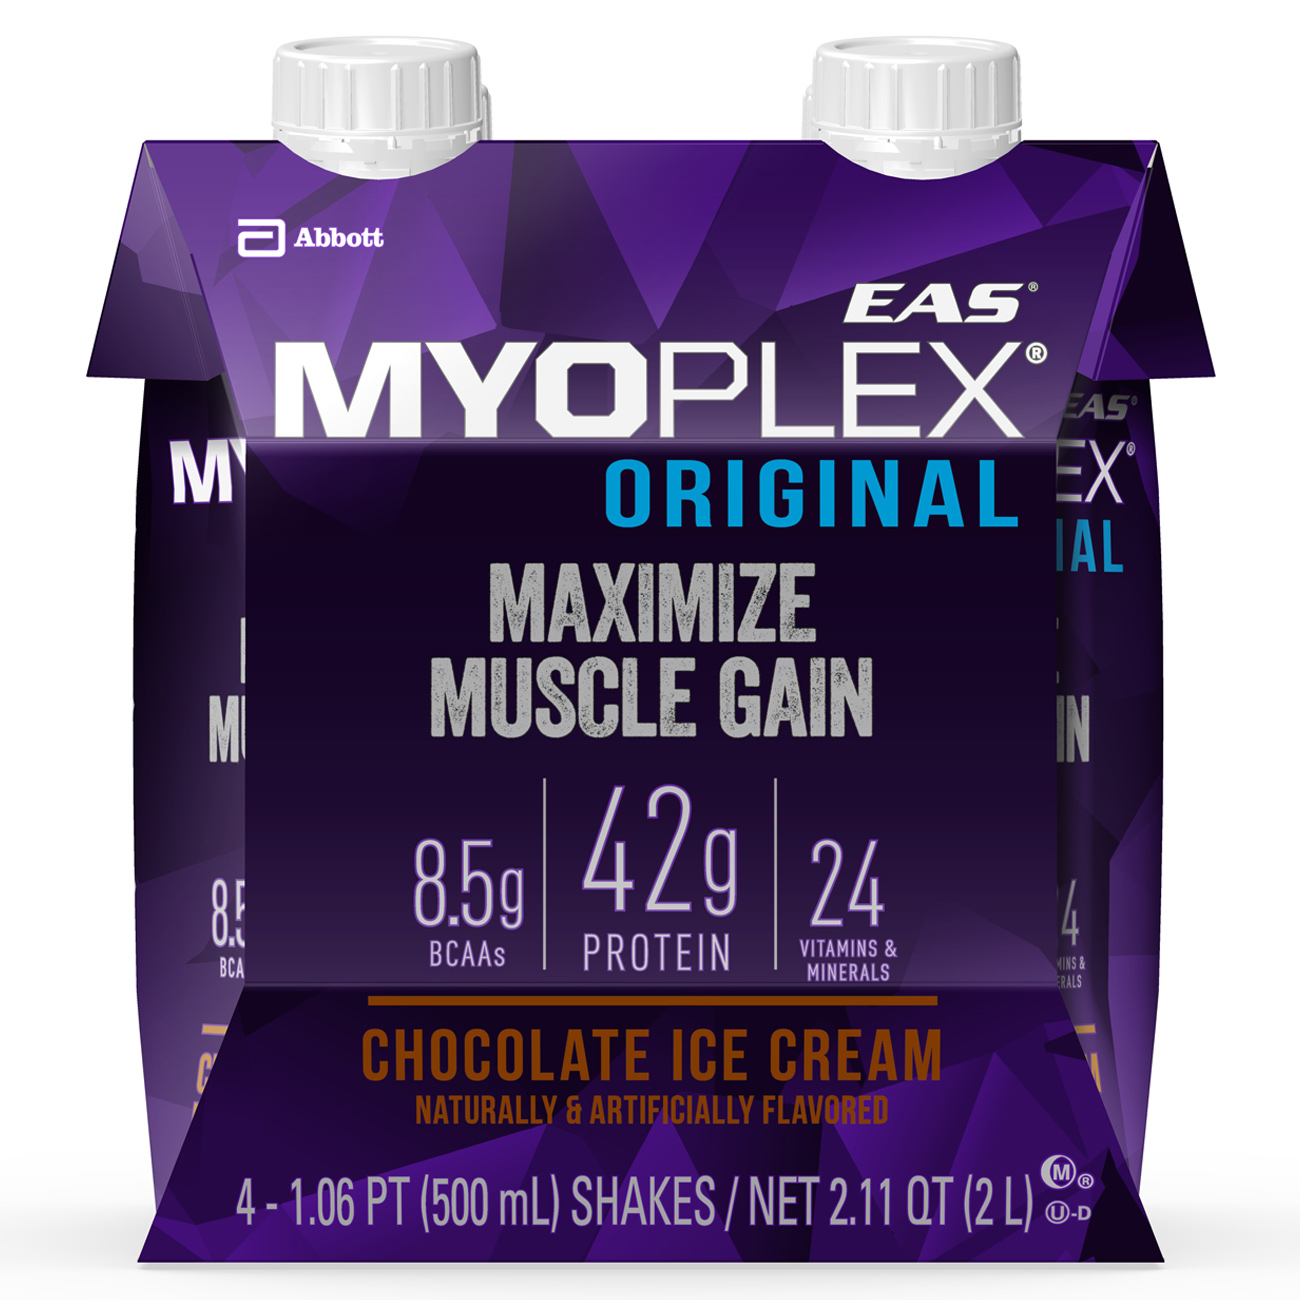 EAS Myoplex Original Ready-To-Drink Protein Shake, 42g High-Quality Protein, Chocolate Ice Cream, 16.9 oz, 4-count packs